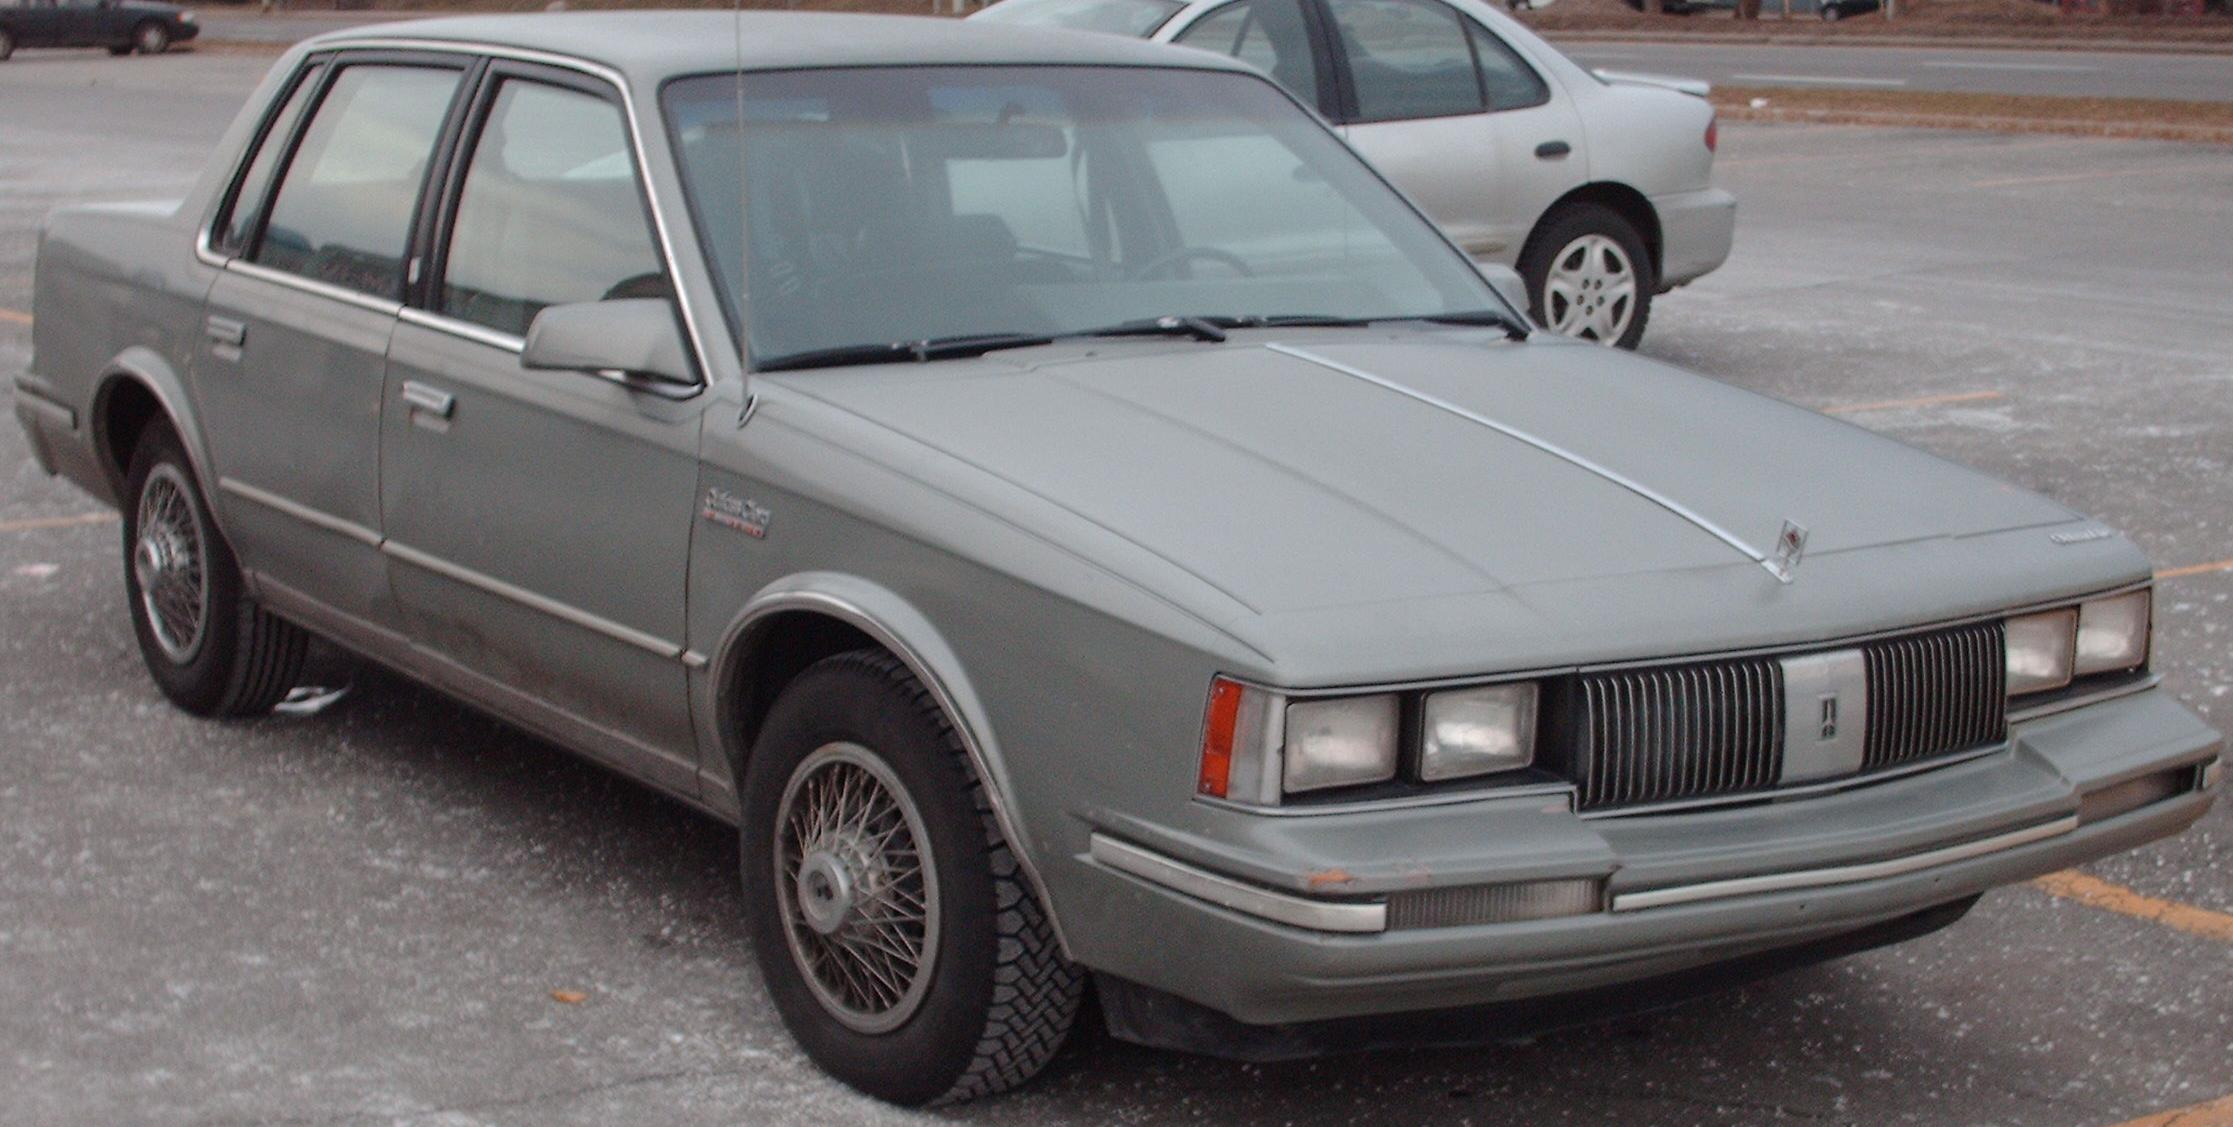 Oldsmobile Cutlass Ciera #1